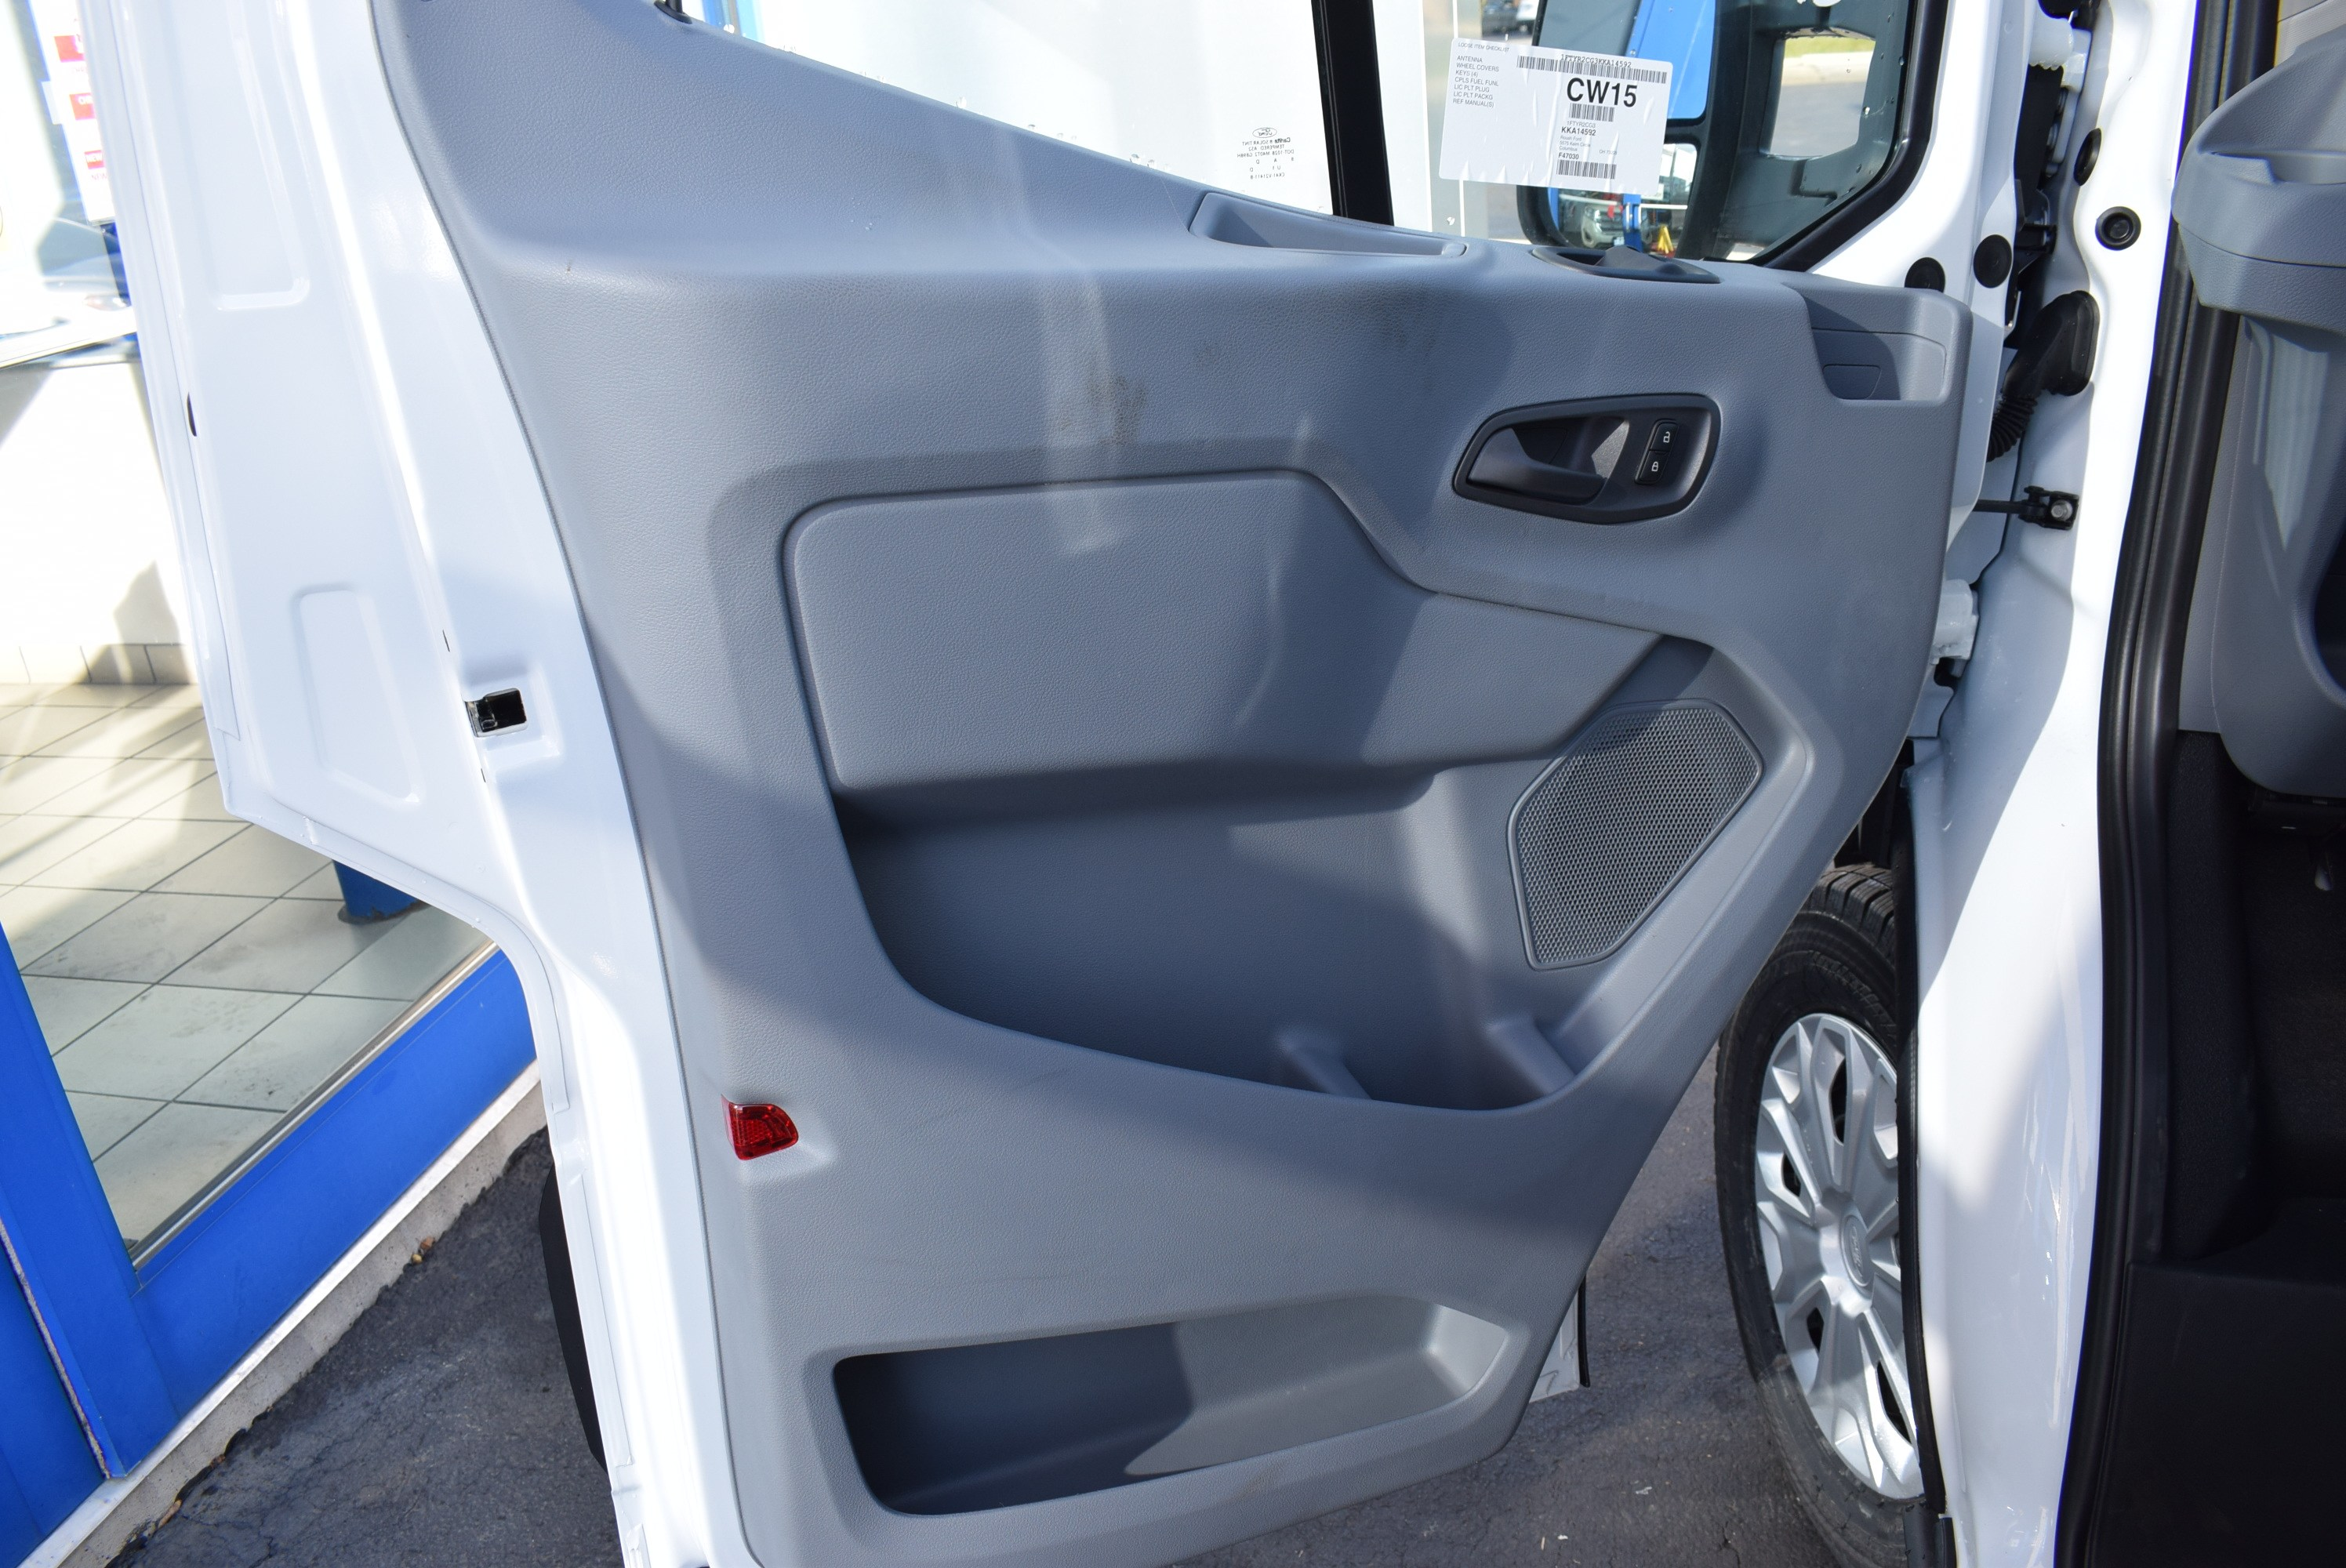 2019 Transit 150 Med Roof 4x2,  Empty Cargo Van #T19085 - photo 14